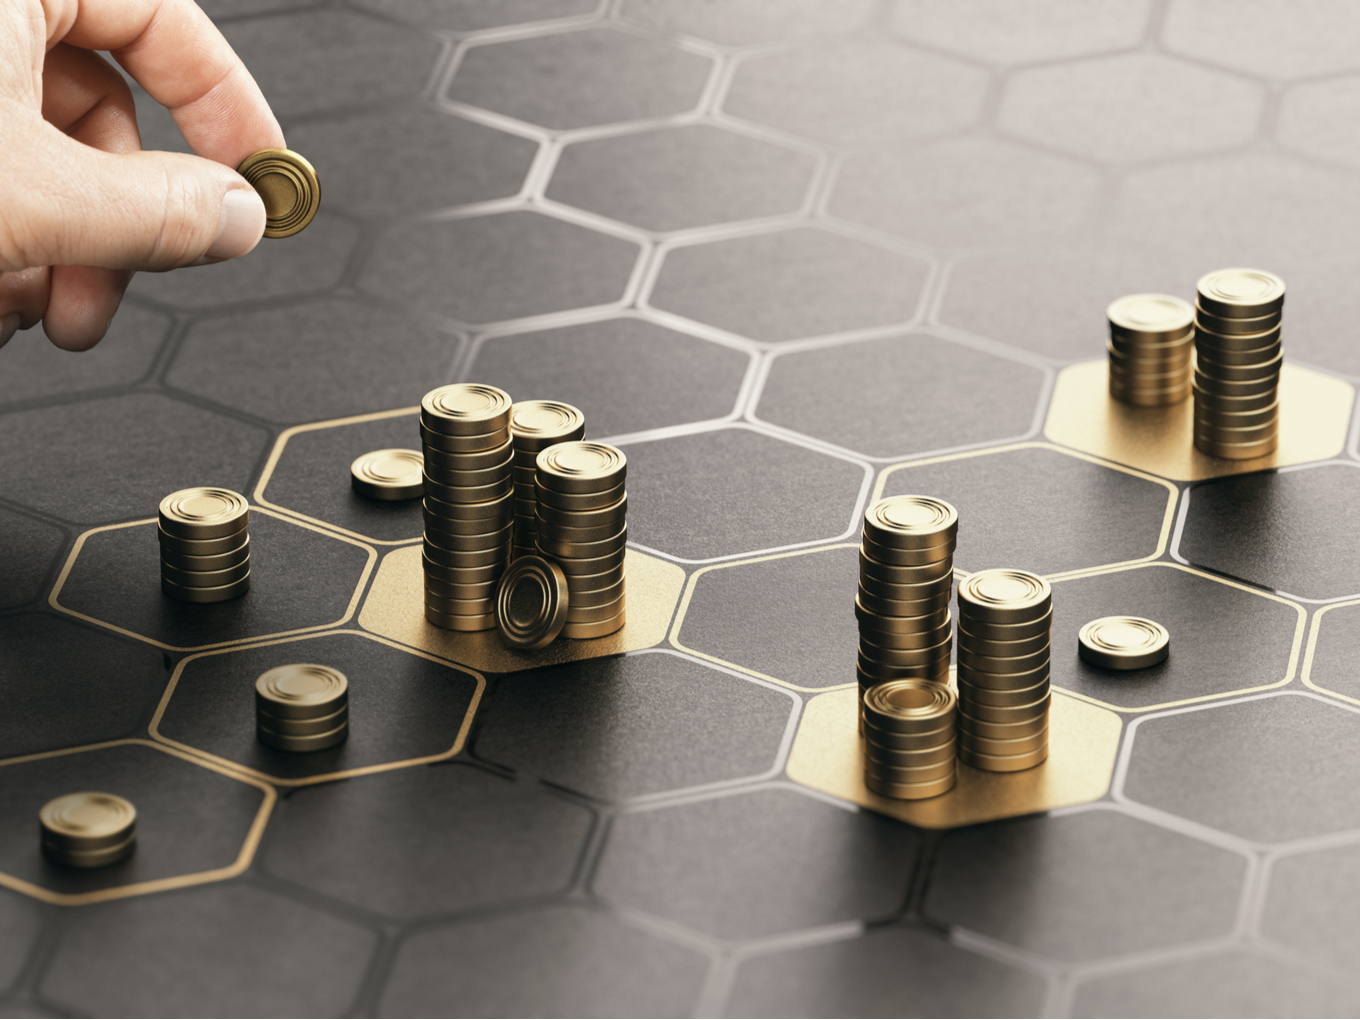 Jupiter Capital Launches $150 Mn Fund To Empower Indian B2B SaaS Startups